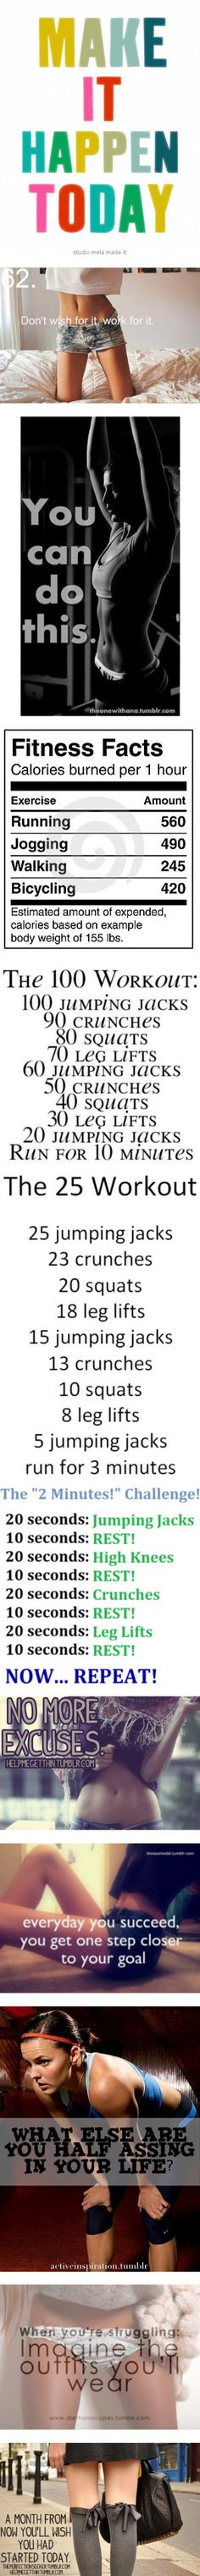 Workout Inspiration- haha love it